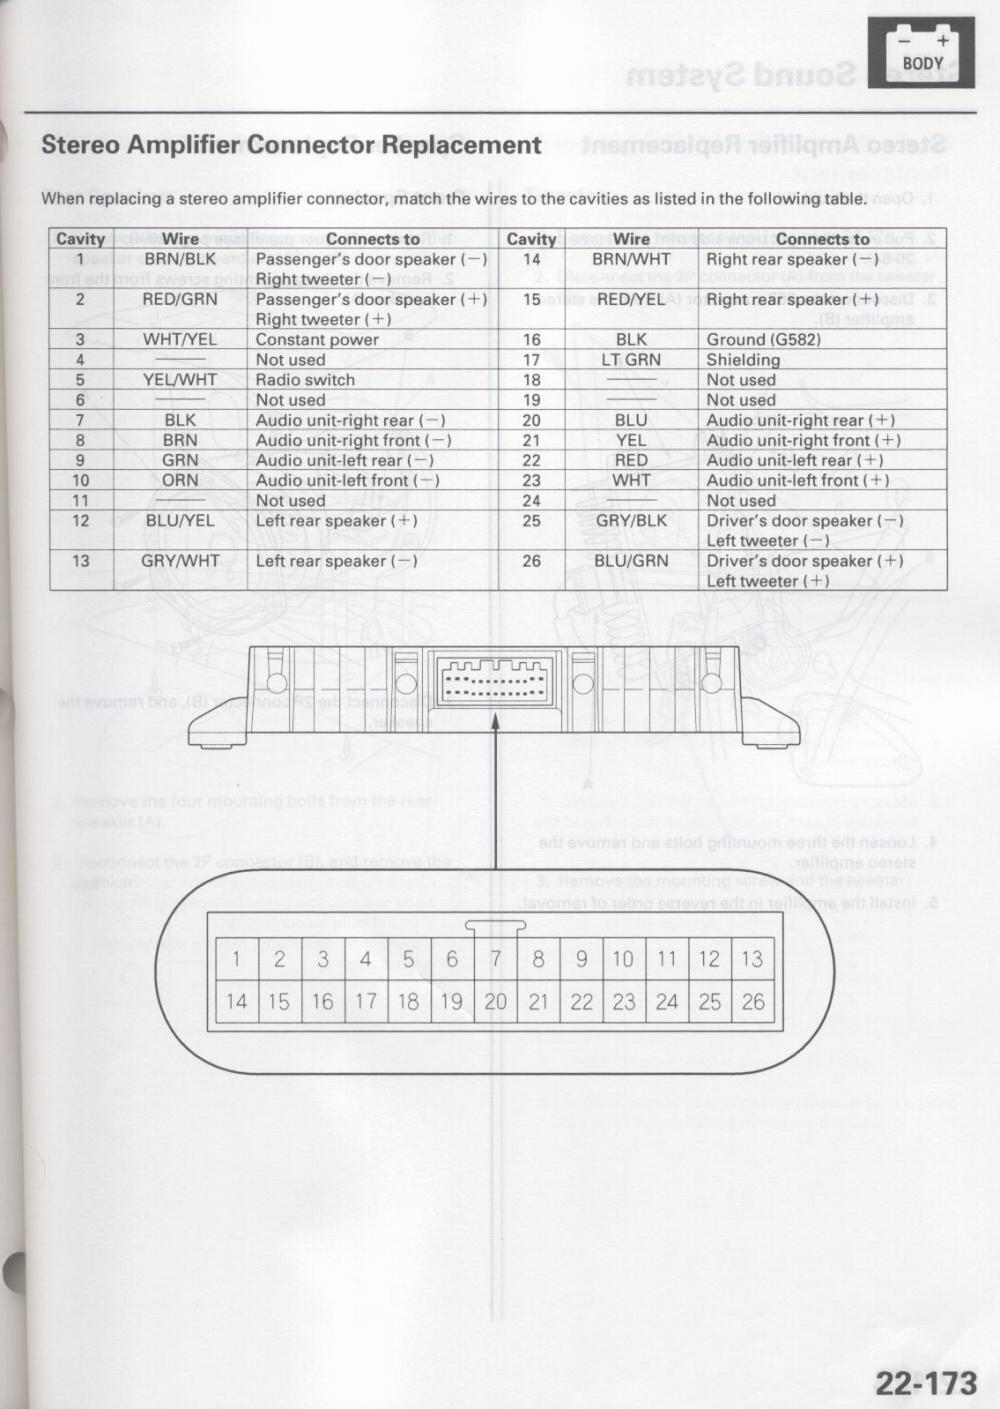 Car Radio Stereo Audio Wiring Diagram Autoradio Connector Wire 2002 Acura Tl Turn Signal Relay Location Installation Schematic Schema Esquema De Conexiones Anschlusskammern Konektor